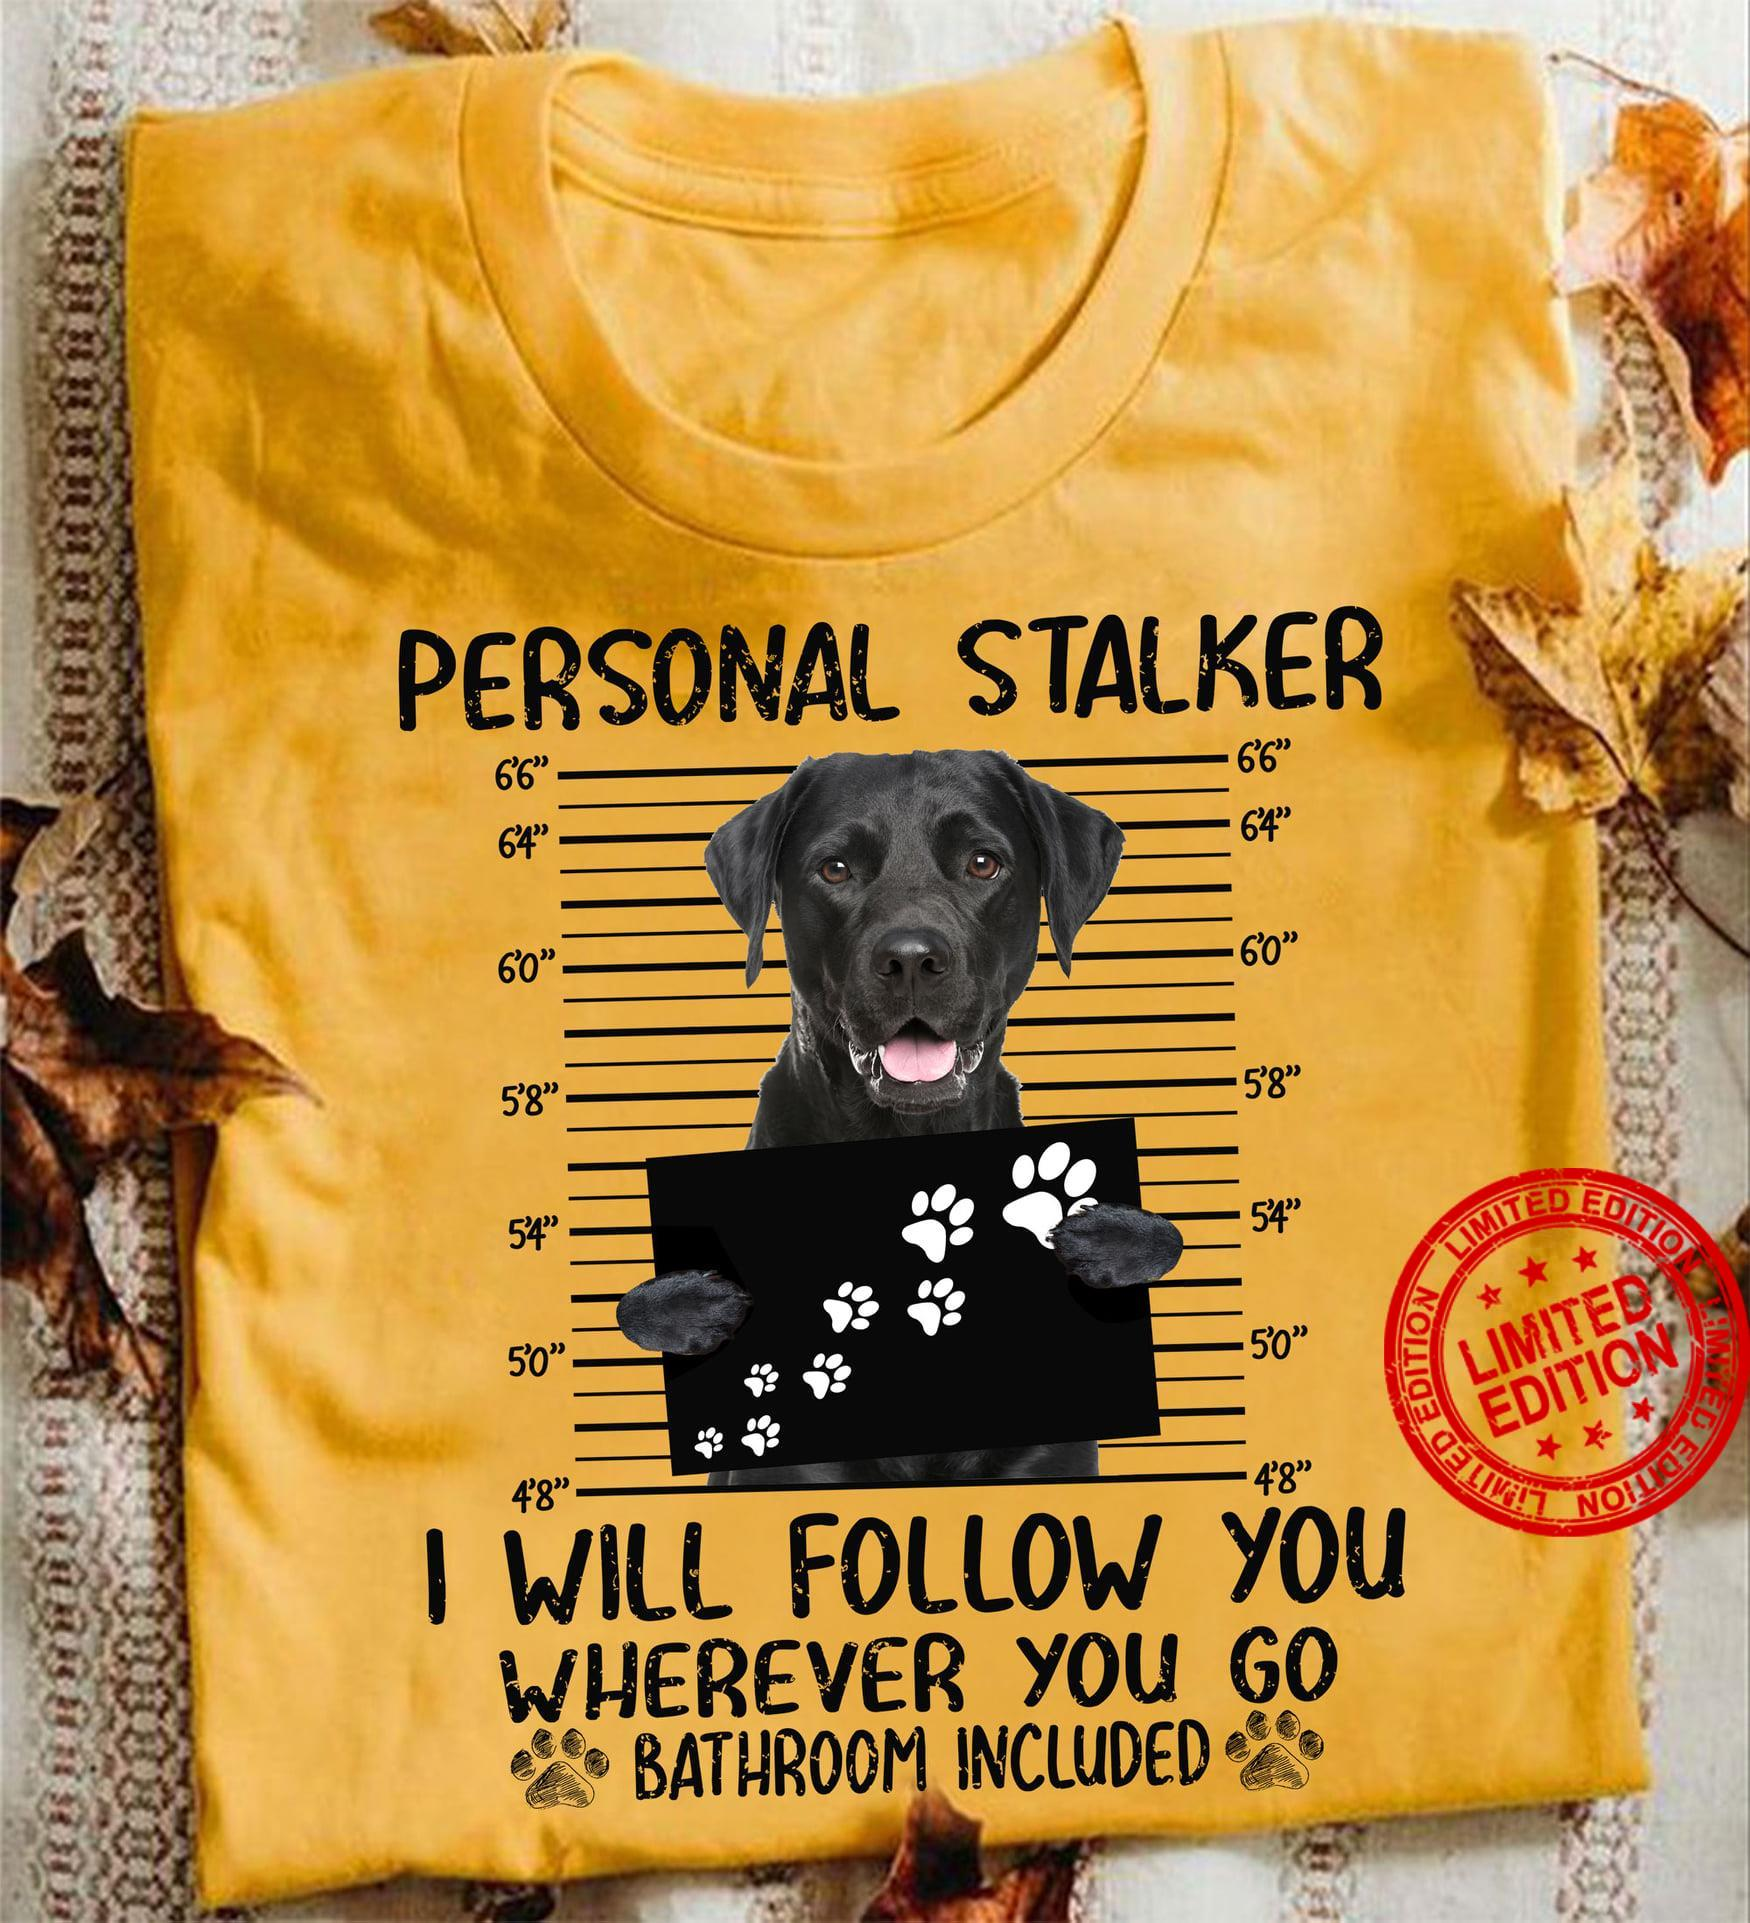 Pitbull Personal Stalker I Will Follow You Wherever You Go Bathroom Included Shirt